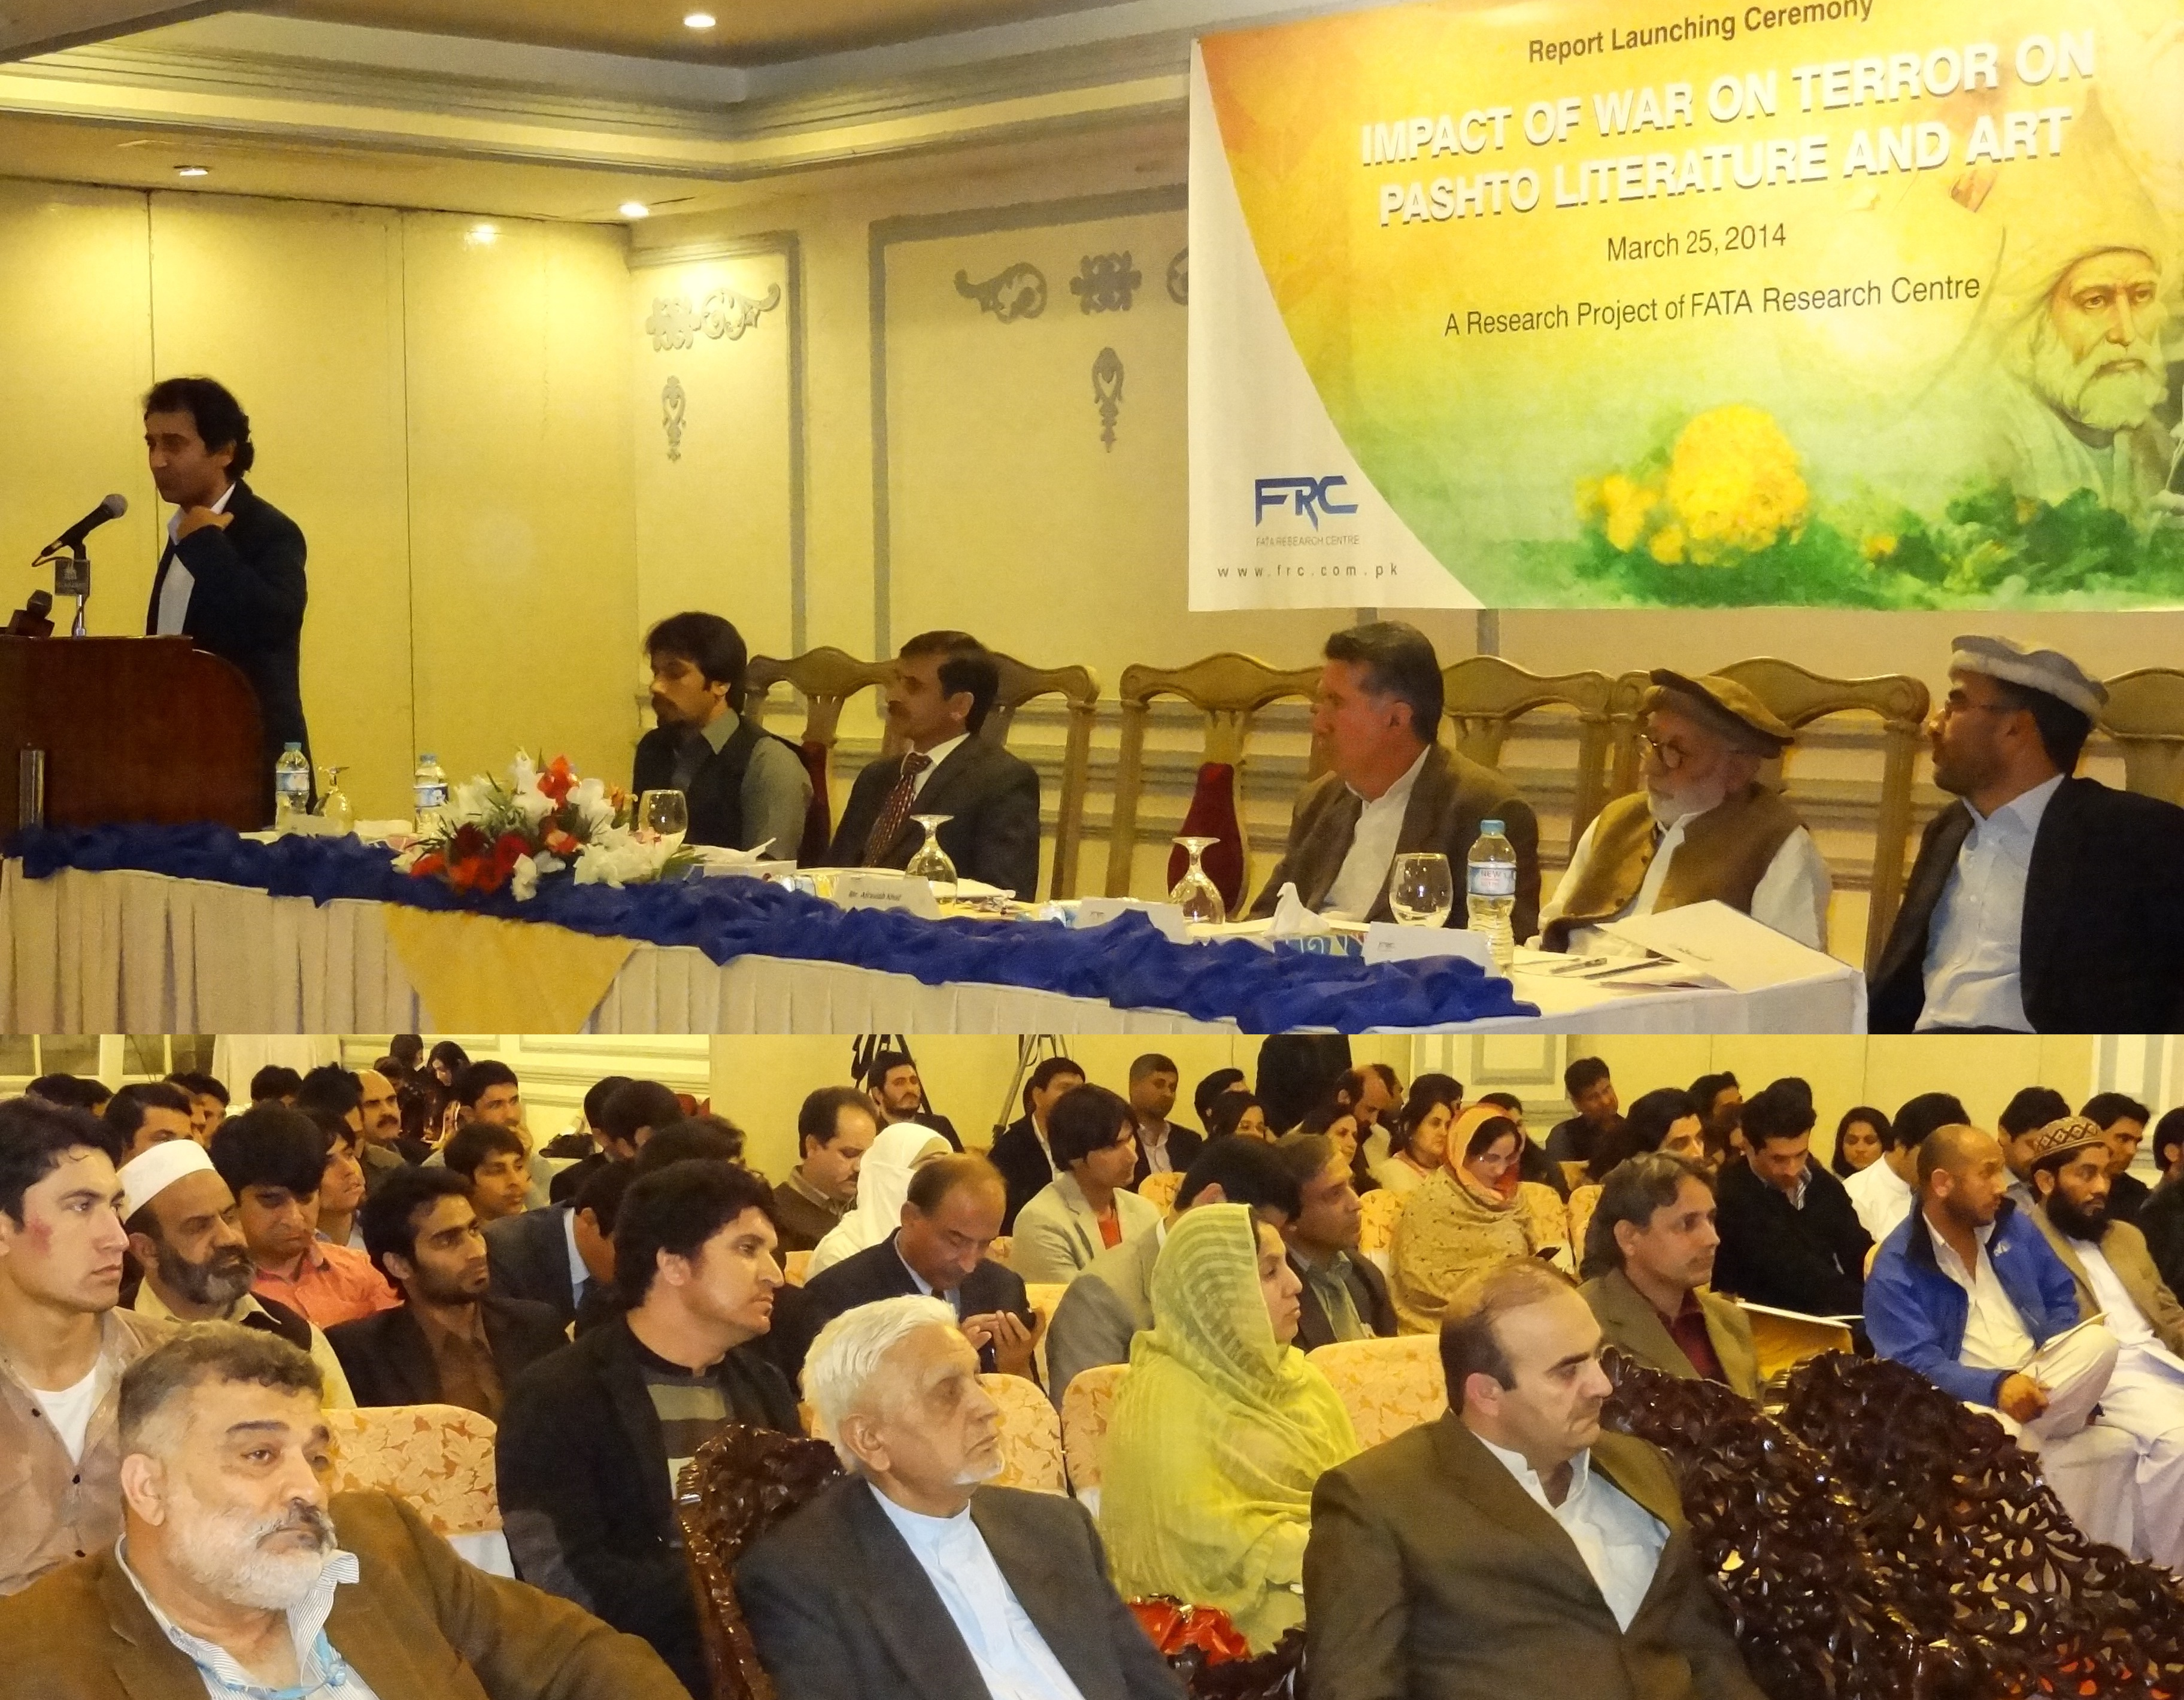 Role of Literature and Art in Peace Building in FATA